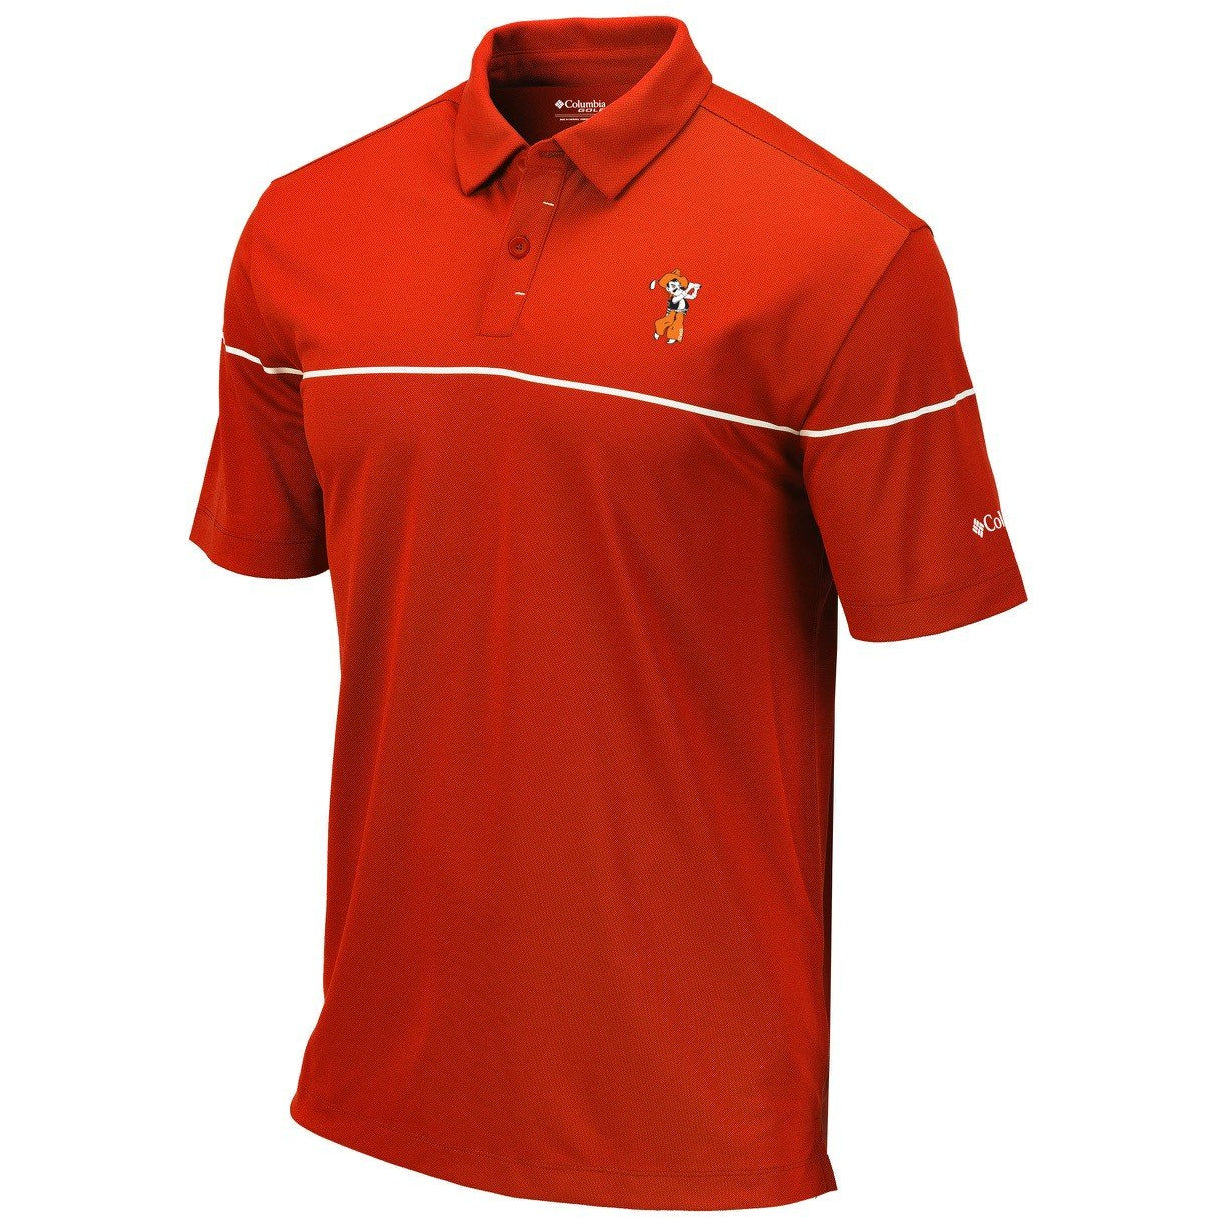 Columbia Men's Omni-Wick Breaker Polo